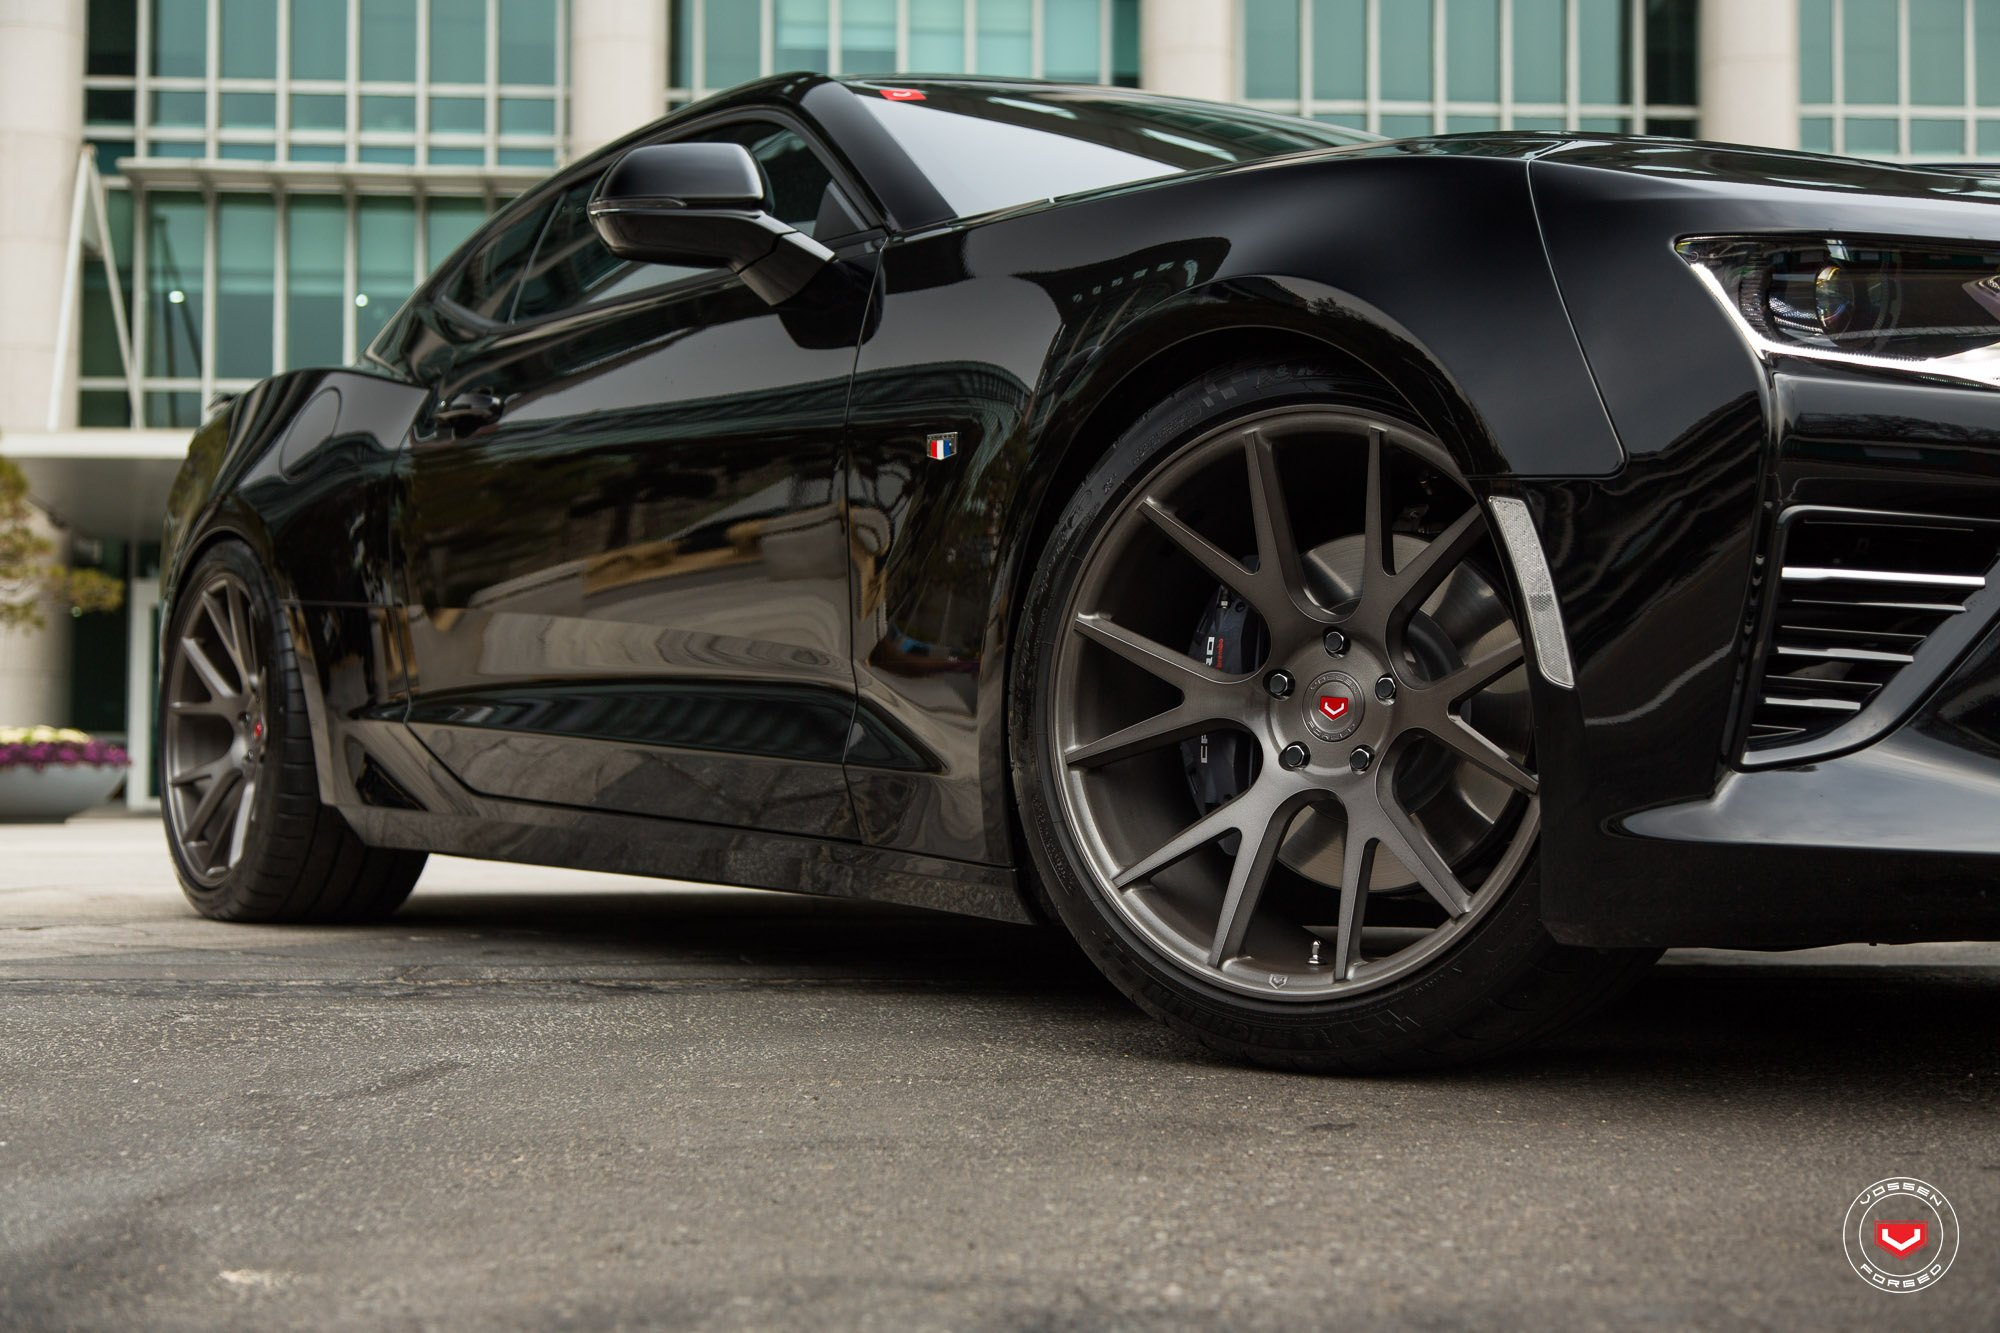 Dark Smoke Vossen Wheels on Black Chevy Camaro - Photo by Vossen